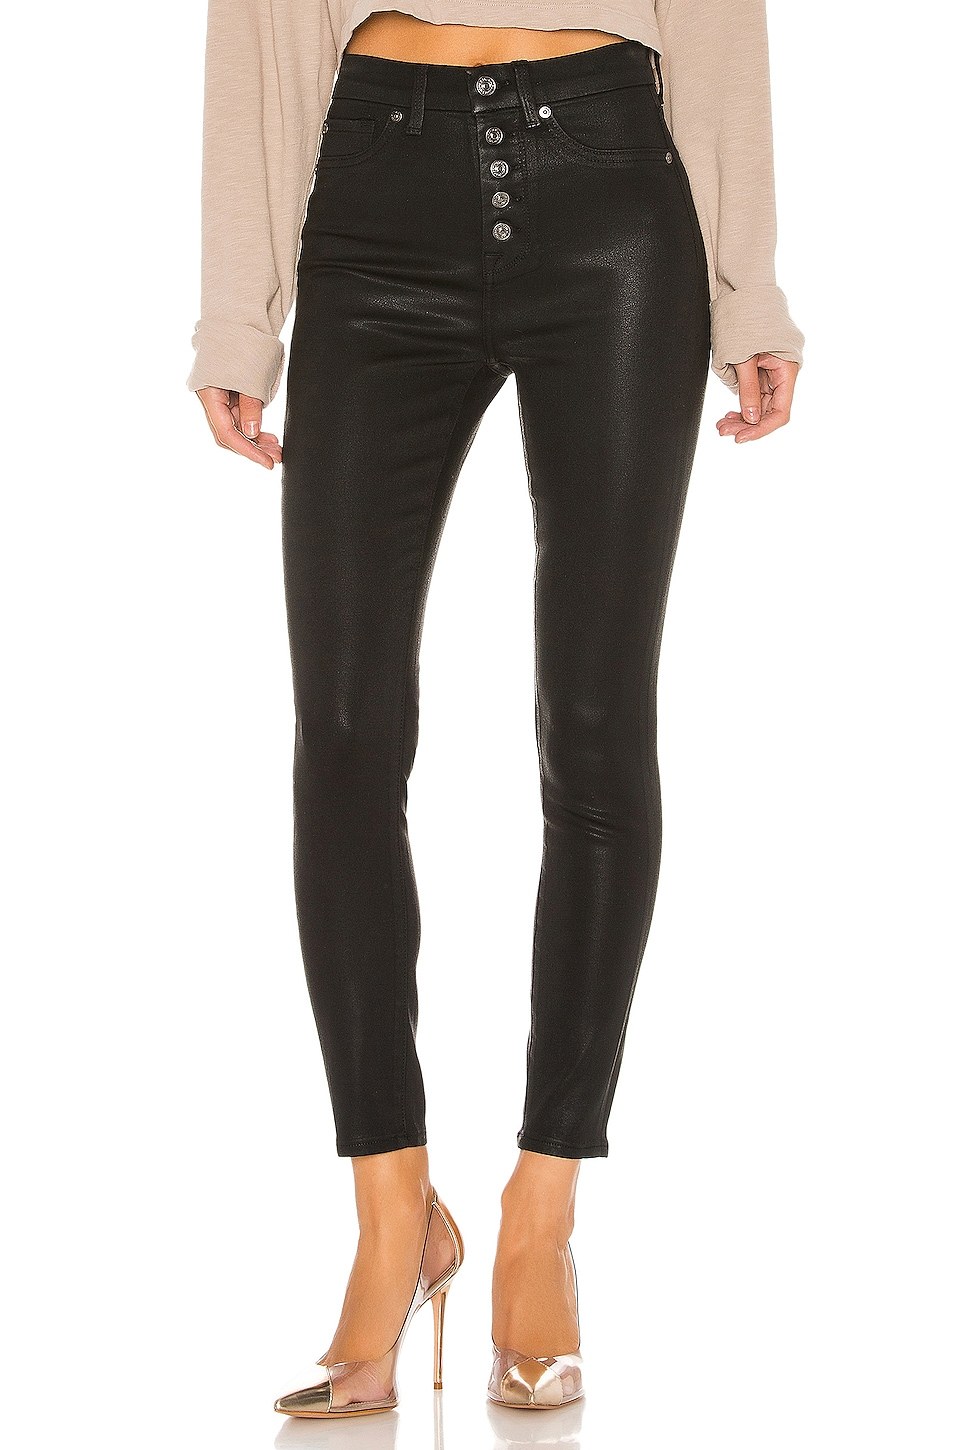 7 For All Mankind B(Air) The High Waist Ankle Skinny en Black Coating